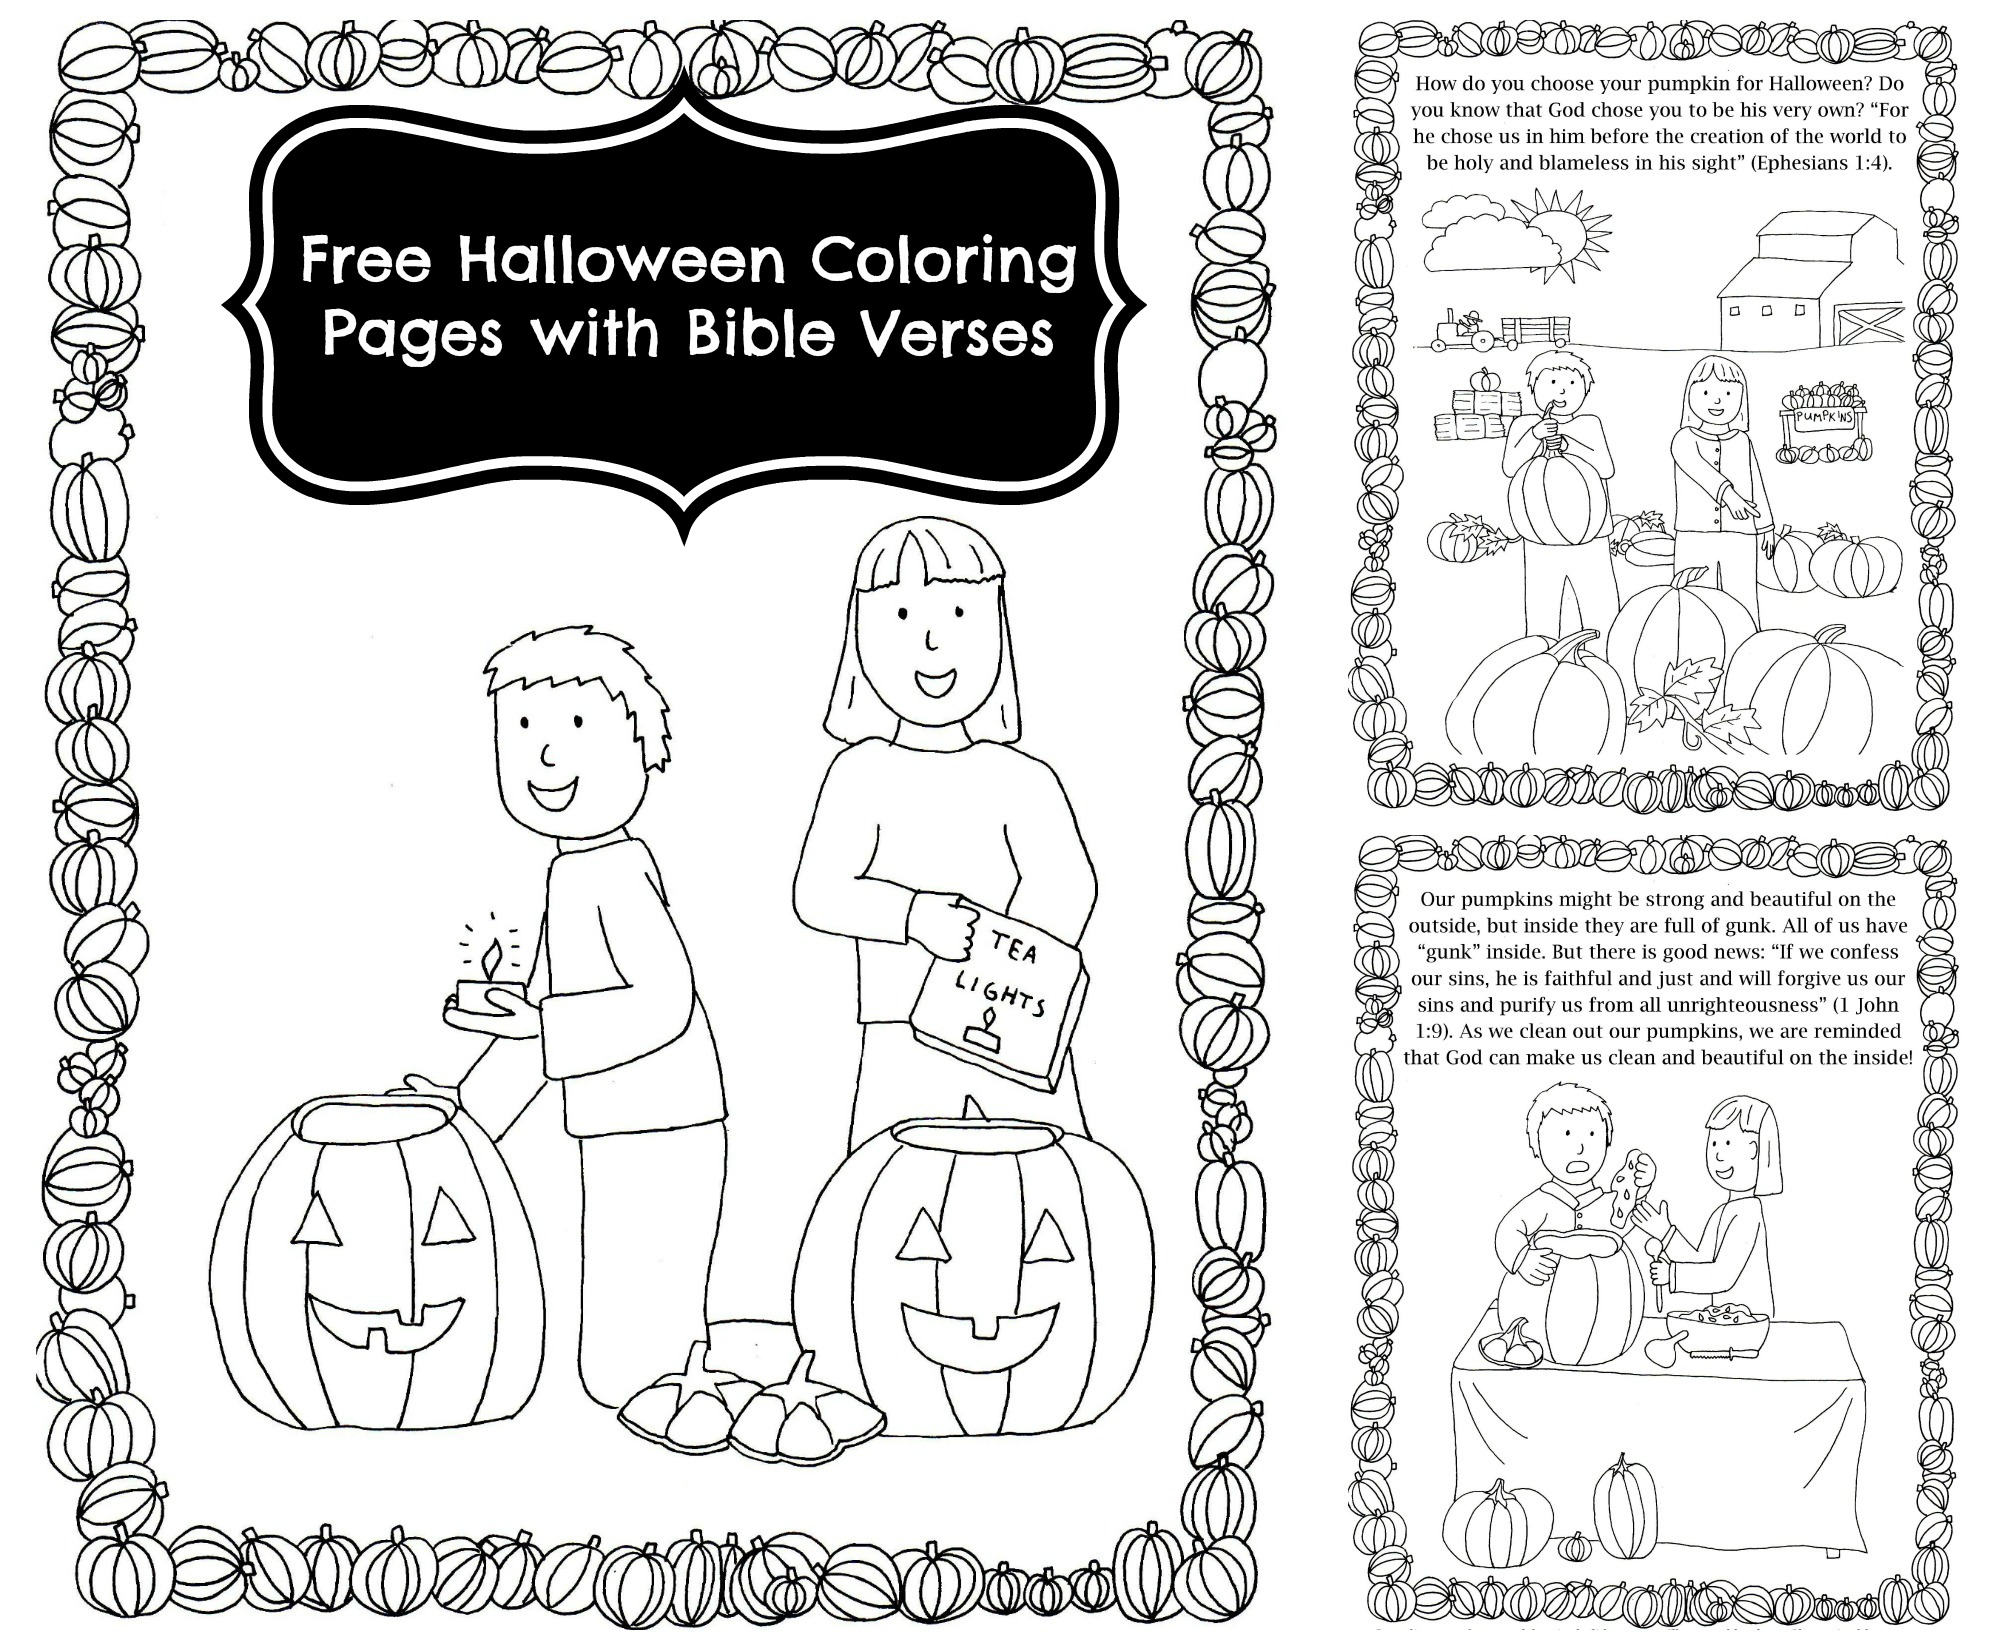 Pumpkin Carving Coloring Pages with Bible Verses for Halloween ...